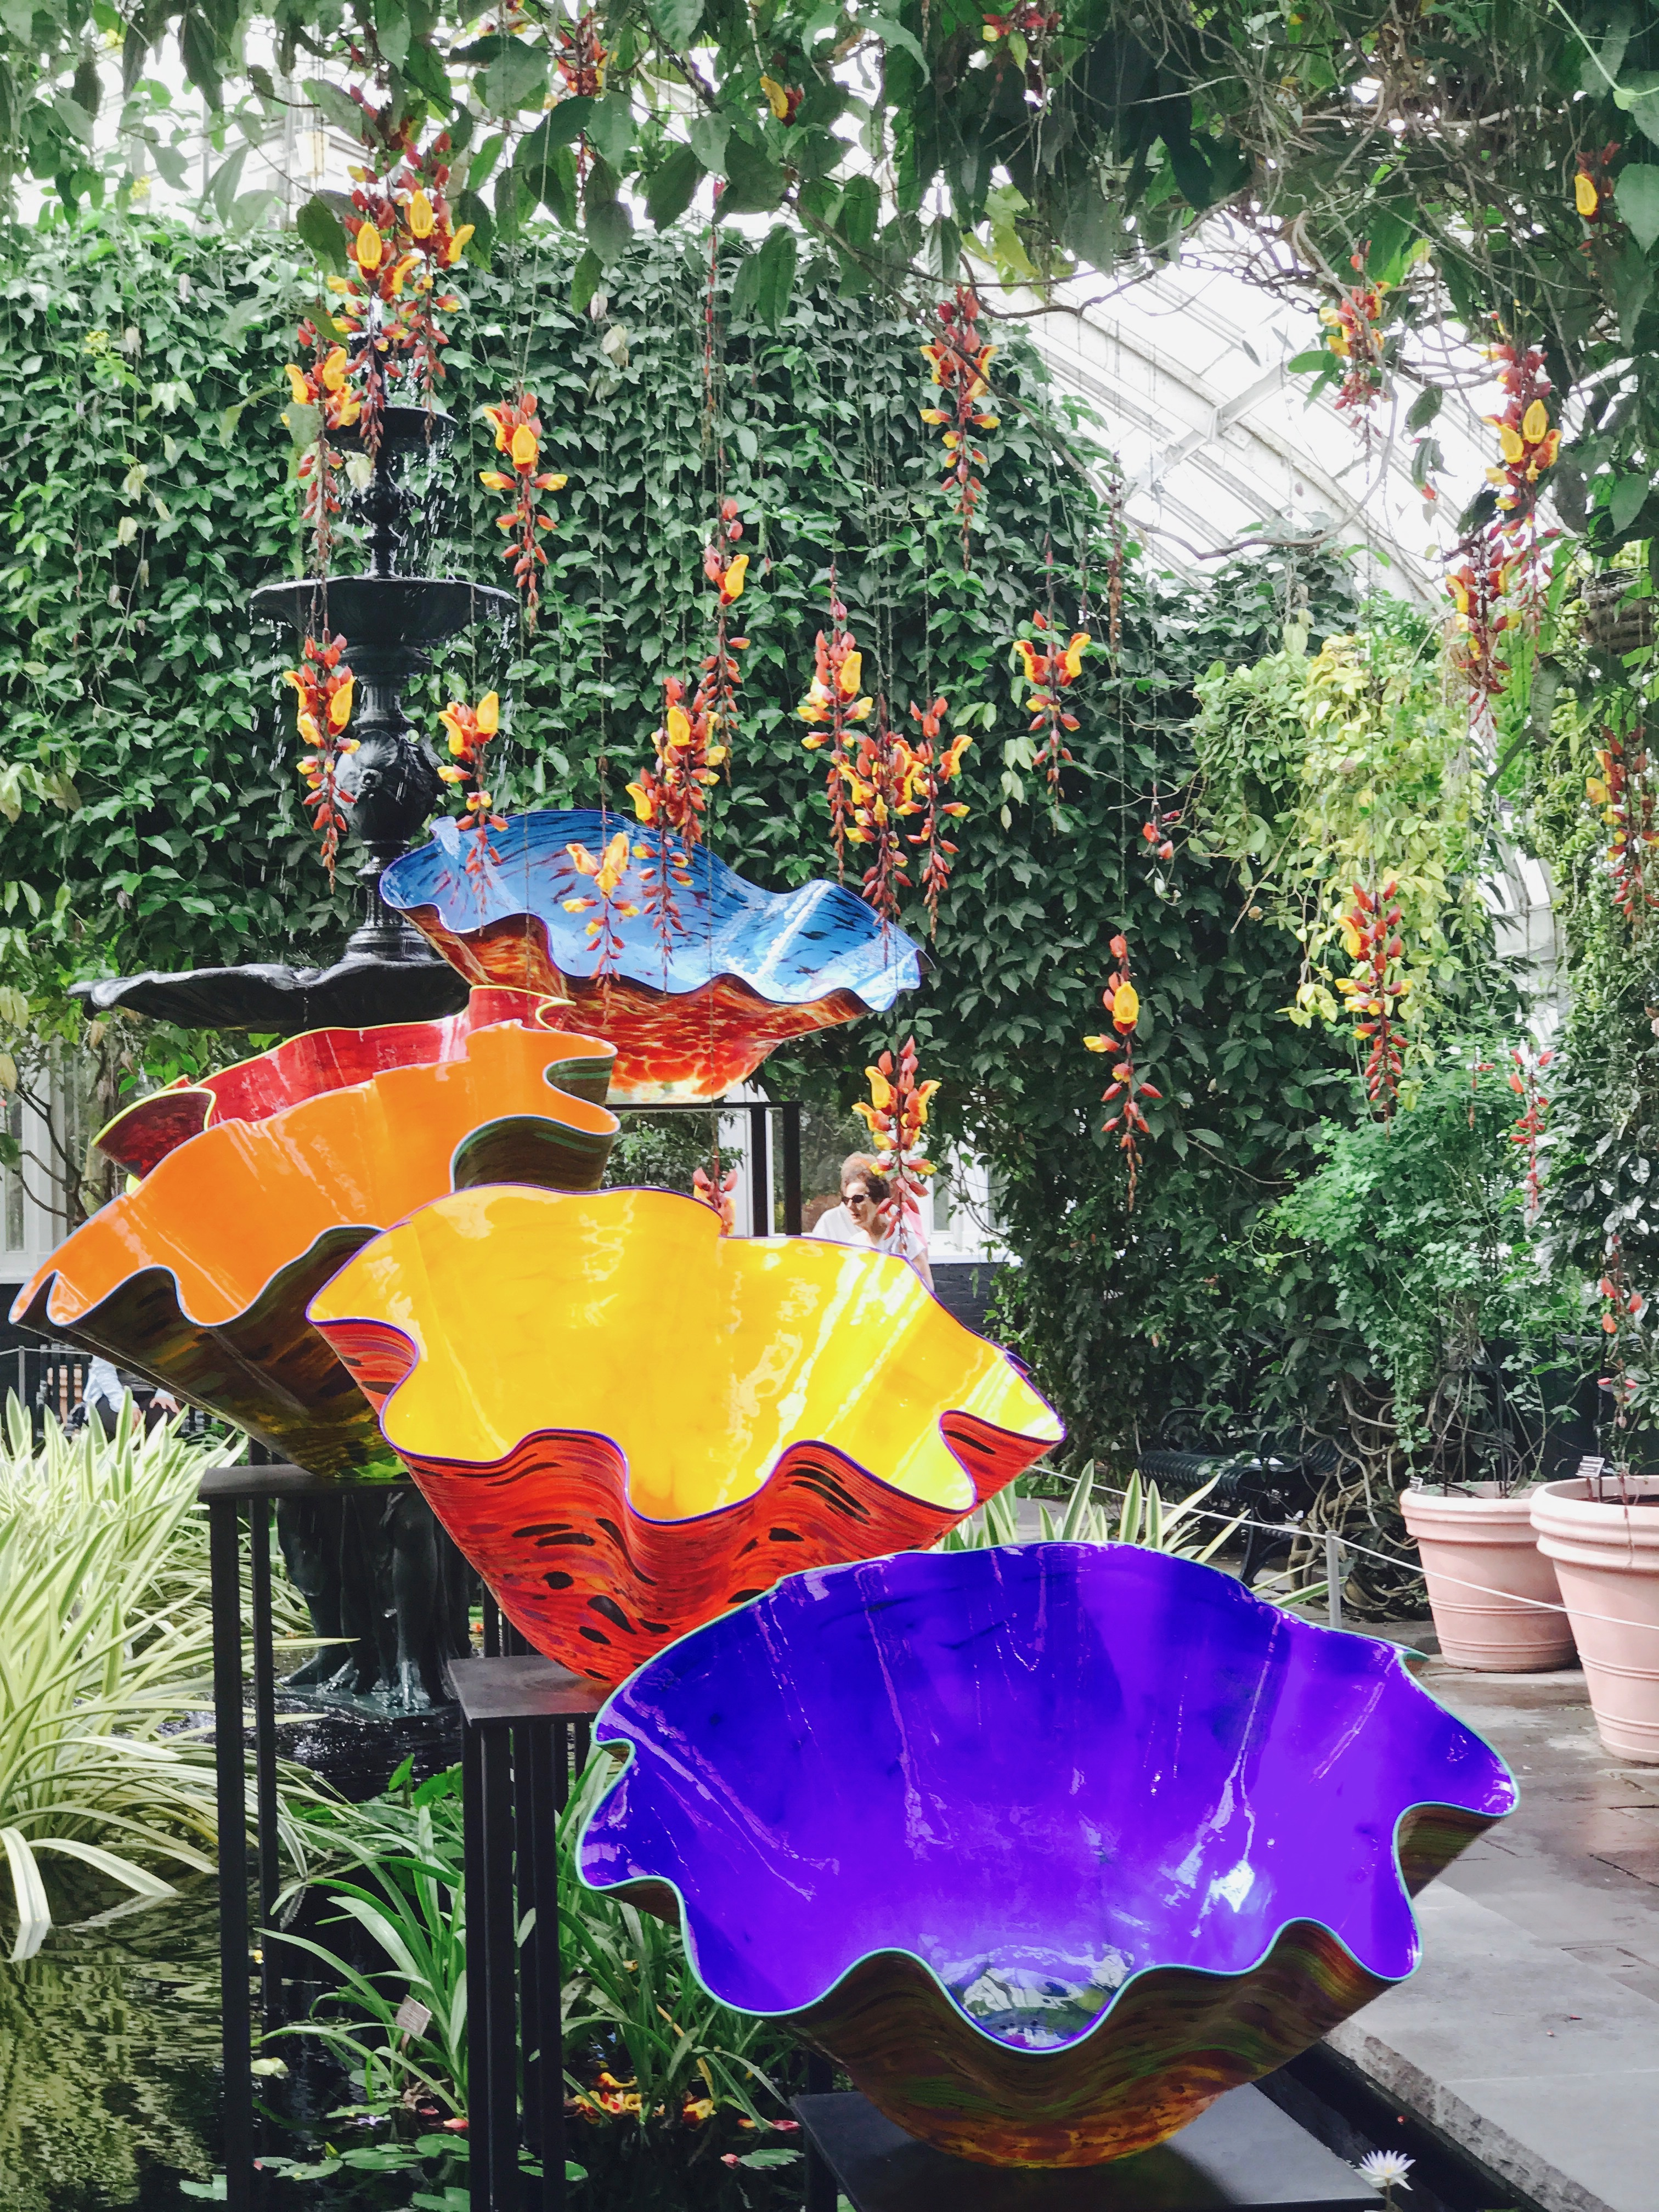 Last June I Wrote A Post Titled When Art And Nature Convene About My  Pre Lunch Visit To The Chihuly Exhibit At The Botanical Gardens.